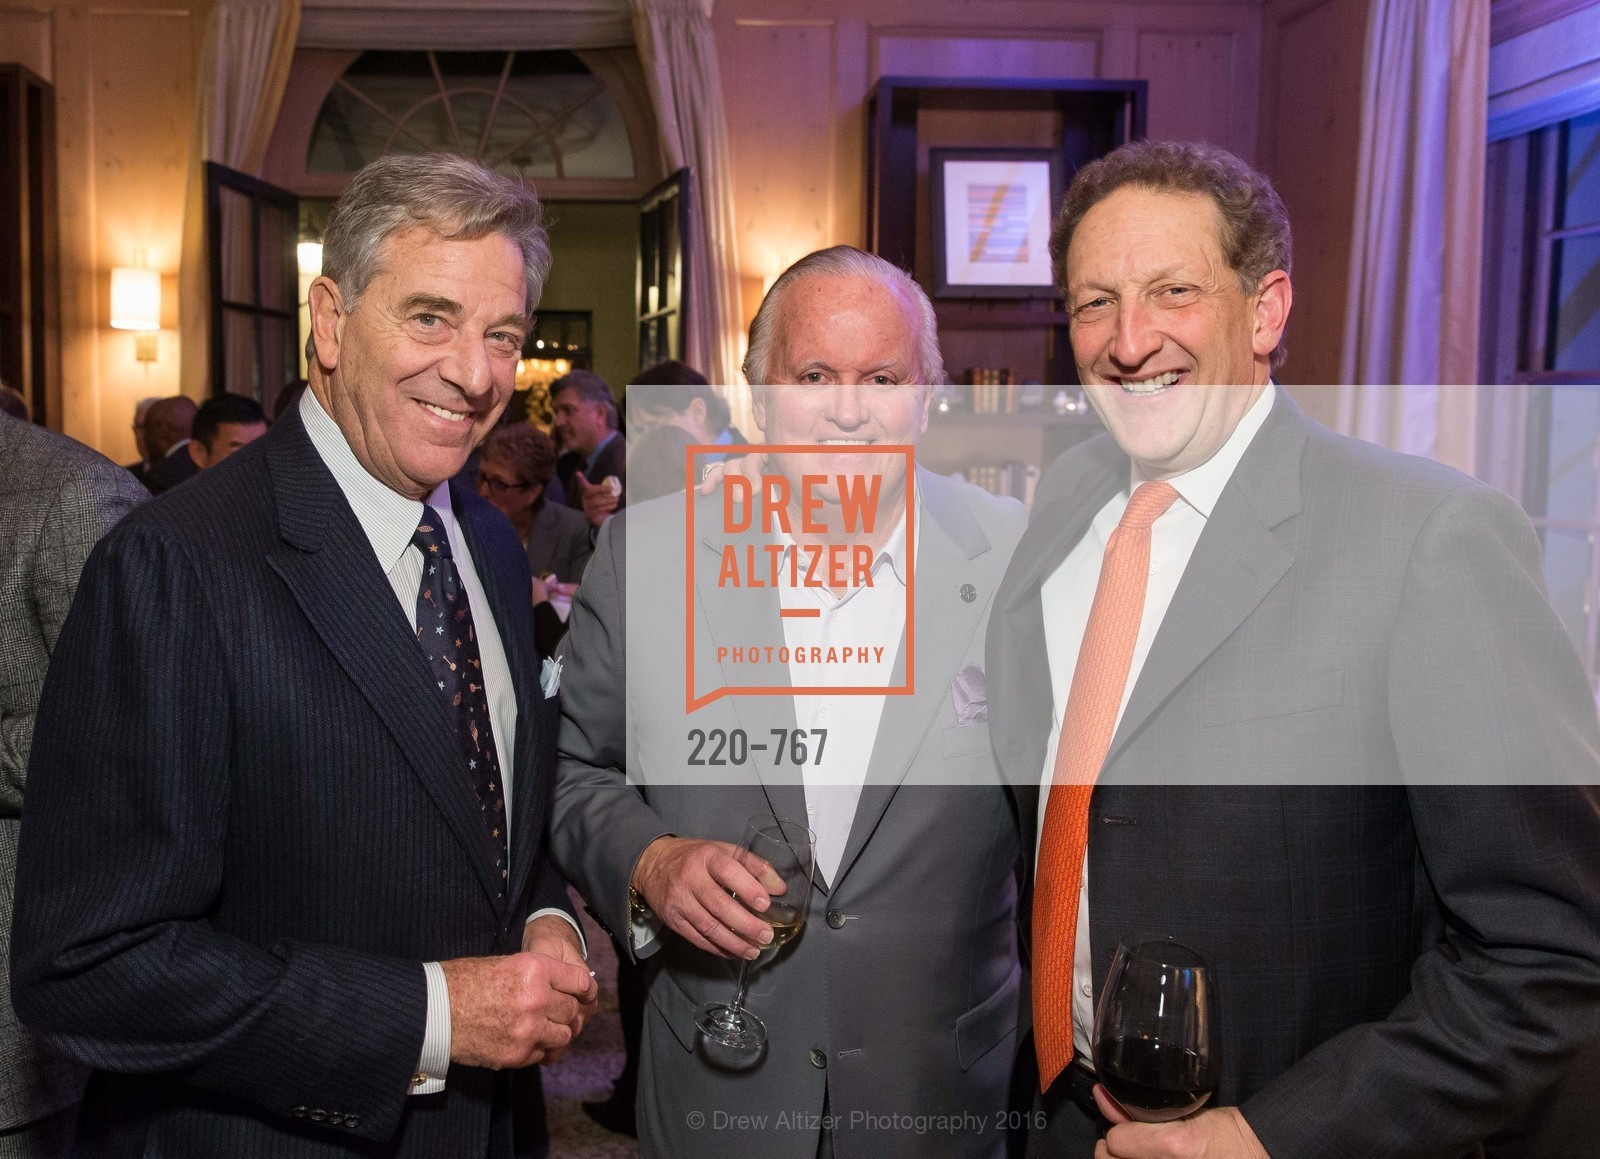 Paul Pelosi, Kevin O'Brien, Larry Baer, A Special Reception with Tony Bennett, The Fairmont, San Francisco, The Penthouse Suite, January 26th, 2016,Drew Altizer, Drew Altizer Photography, full-service agency, private events, San Francisco photographer, photographer california